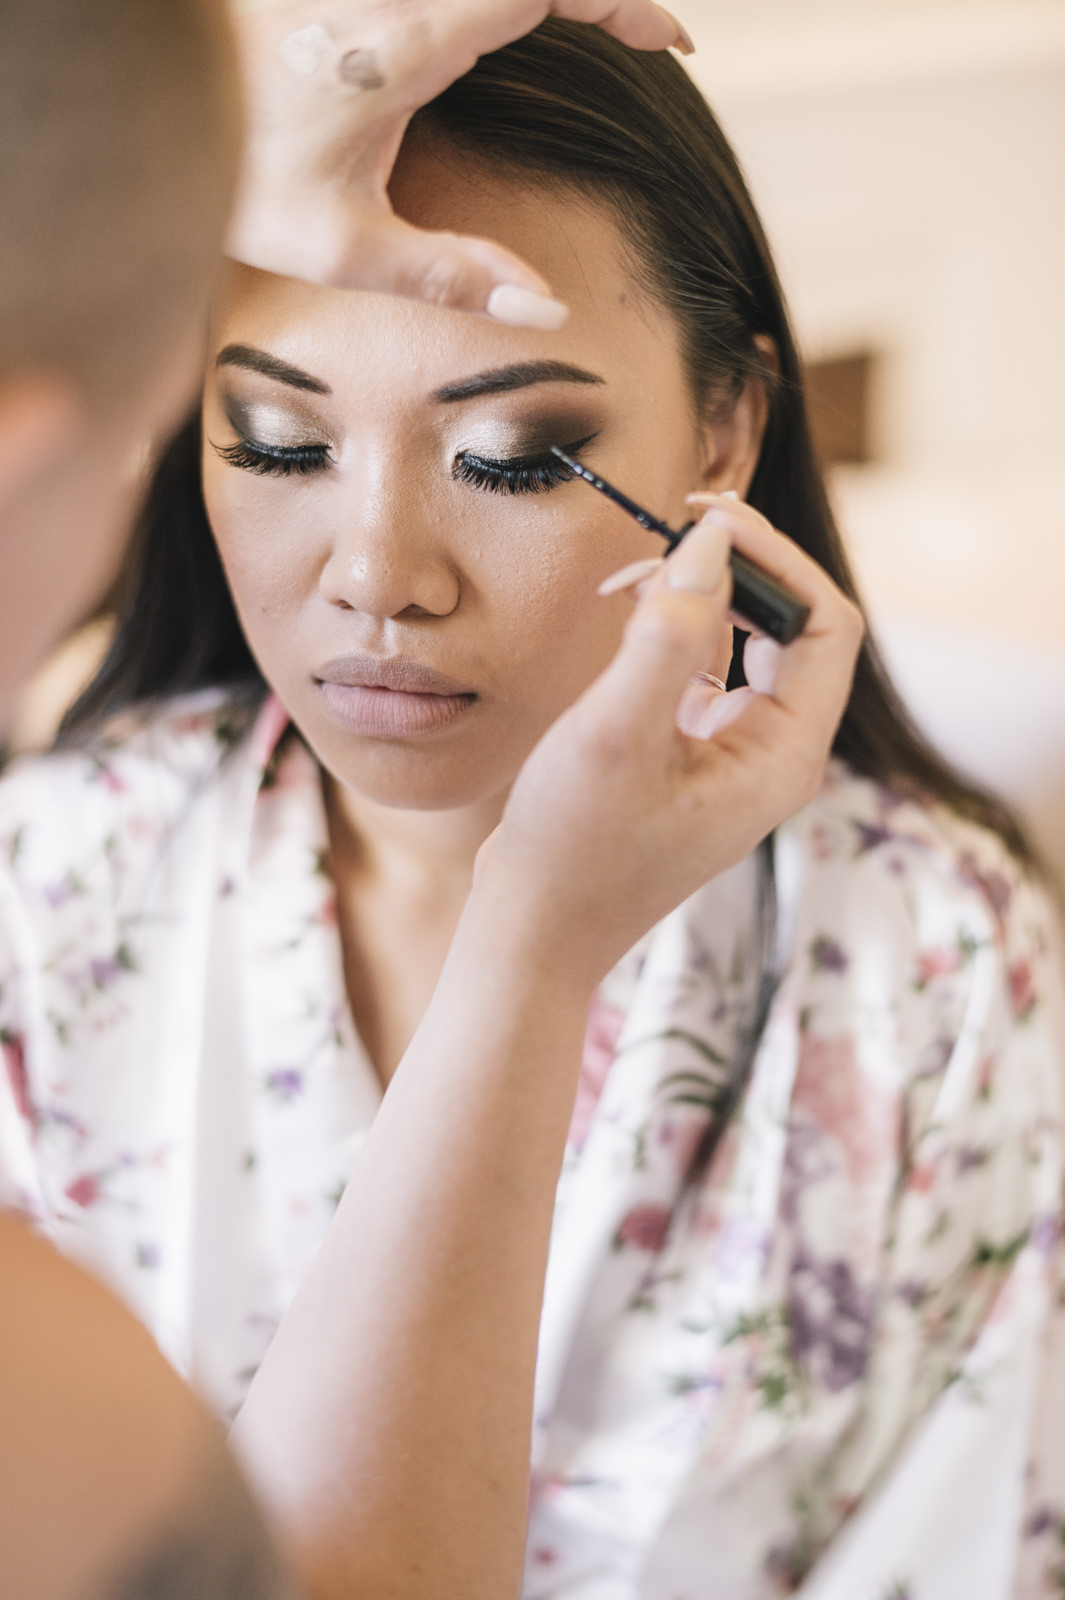 the bride during the make up